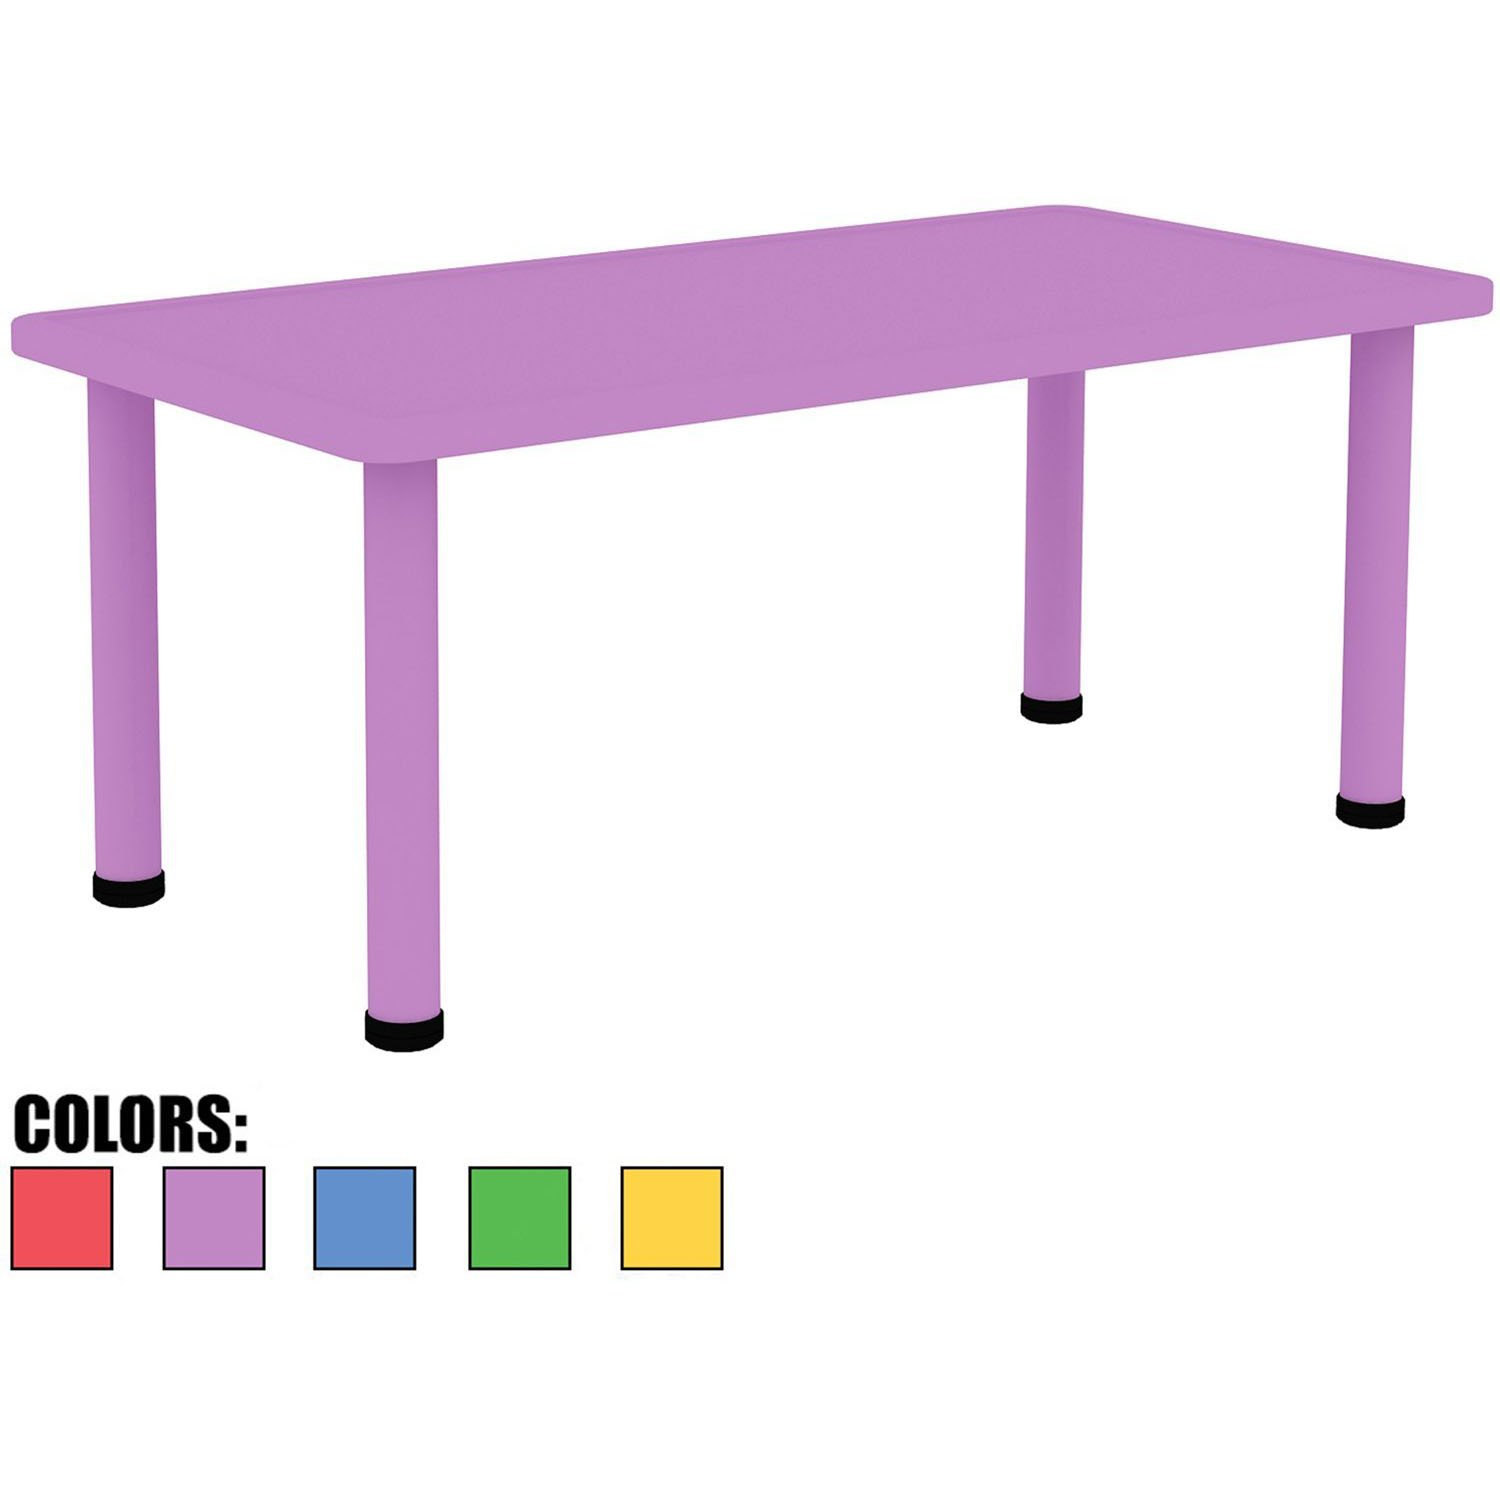 "2xhome - Purple - Kids Table - Height Adjustable 18.25'' - 19.25'' Rectangle Shape Child Plastic Activity Table Bright Color Learn Play School Home Fun Children Furniture Round Safety Corner 24""x48'' by 2xhome (Image #1)"